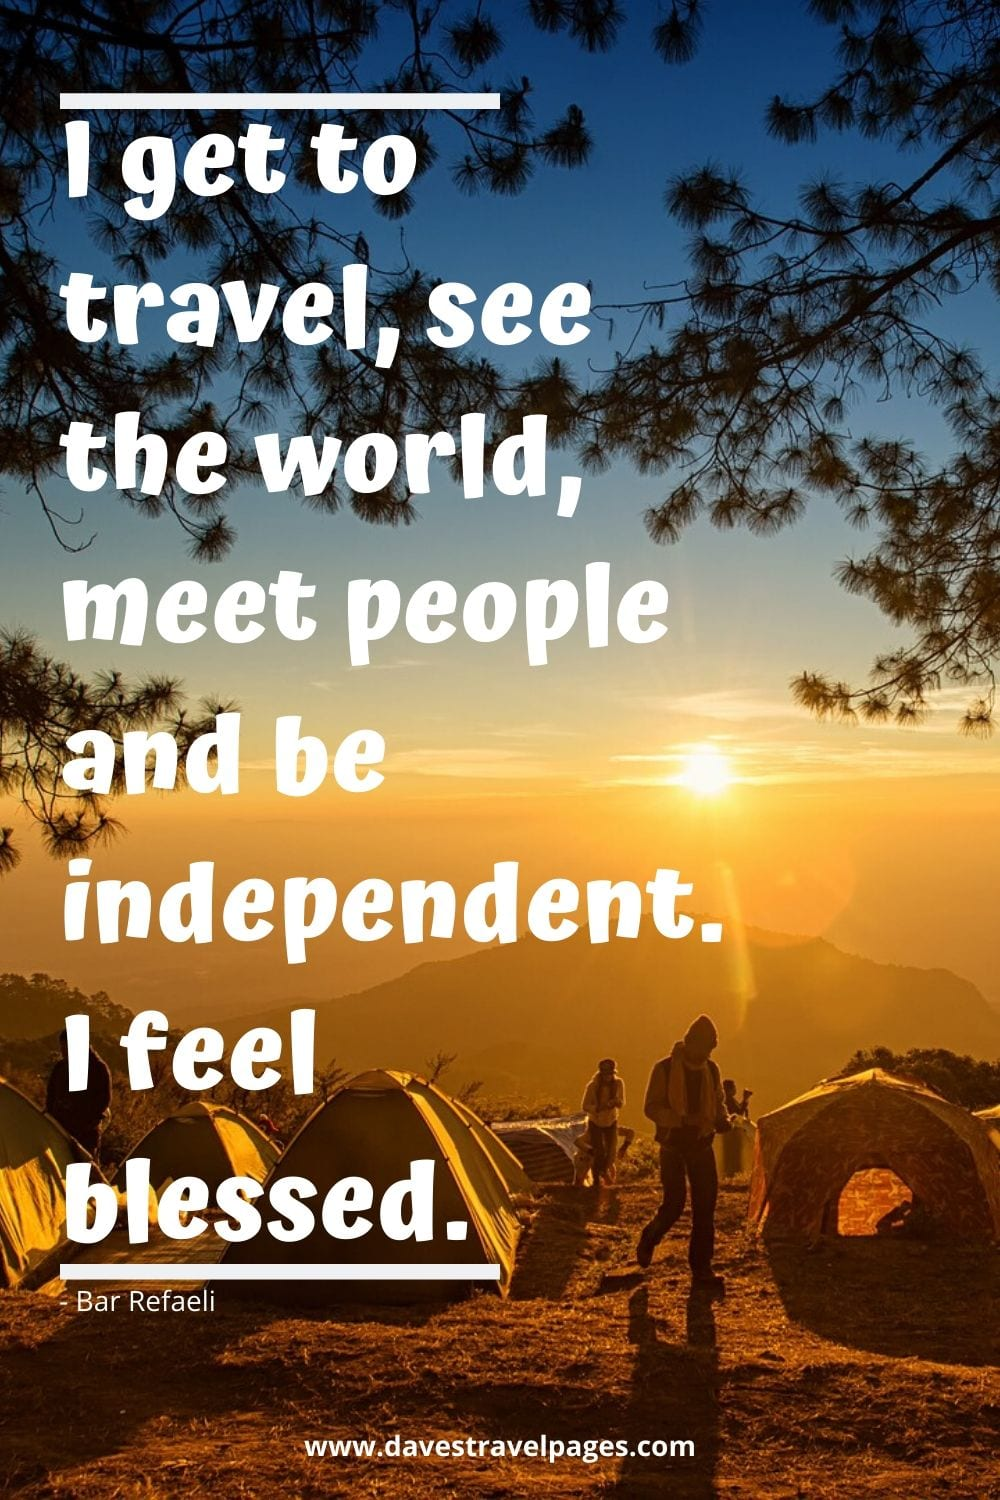 I get to travel, see the world, meet people and be independent. I feel blessed. Bar Refaeli